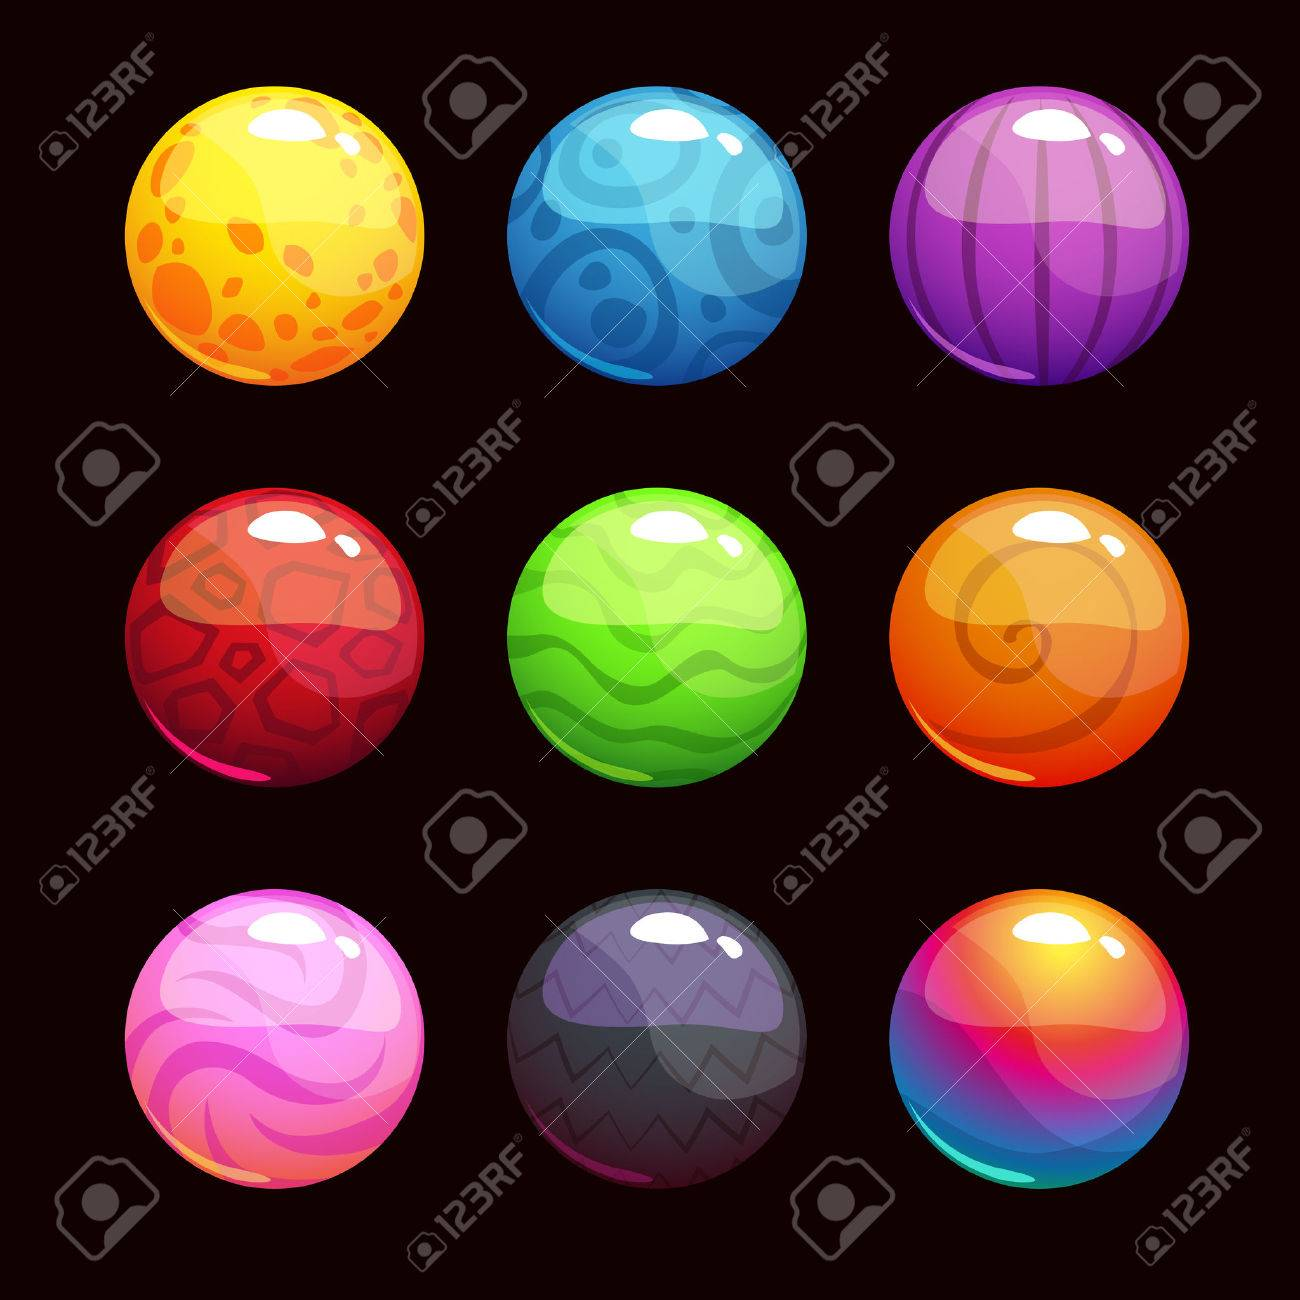 Funny Cartoon Colorful Shiny Bubbles Vector Elements For Game Design Stock Vector 48171379